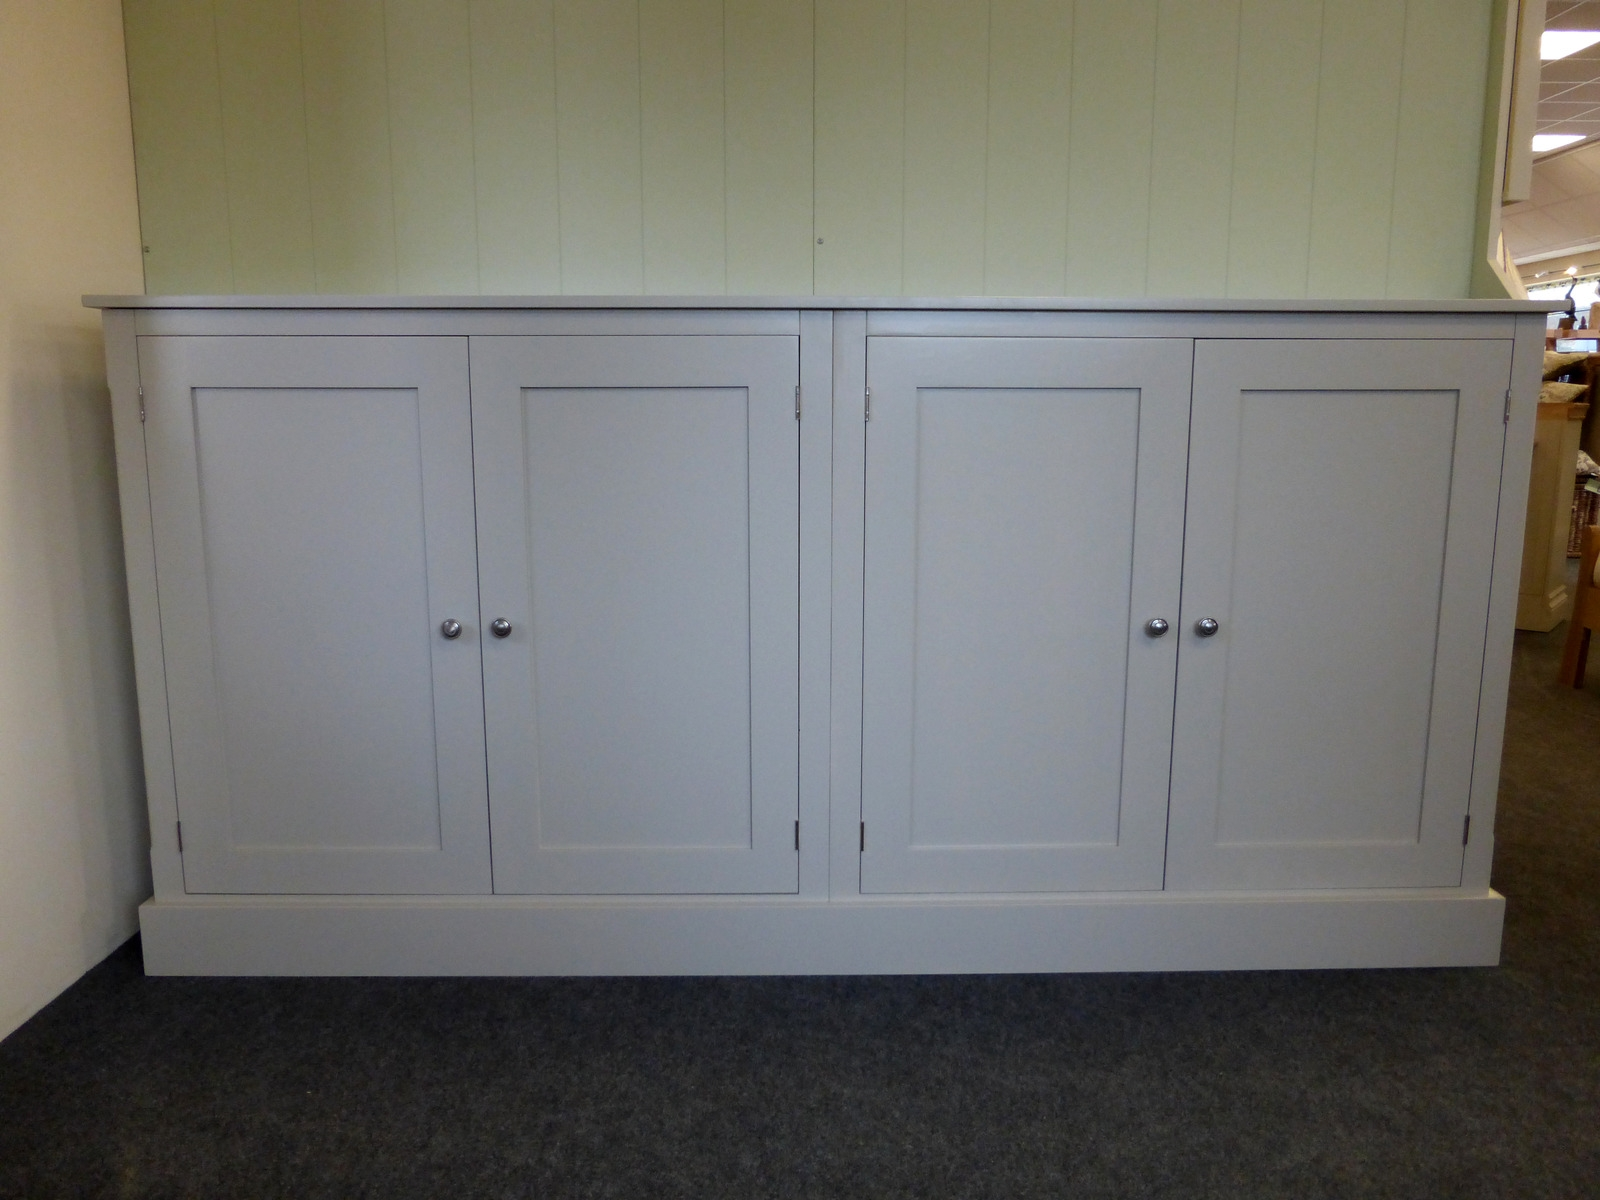 Cupboards Buy Pine Oak Painted And Bespoke Furniture Regarding Bespoke Cupboard (#4 of 15)